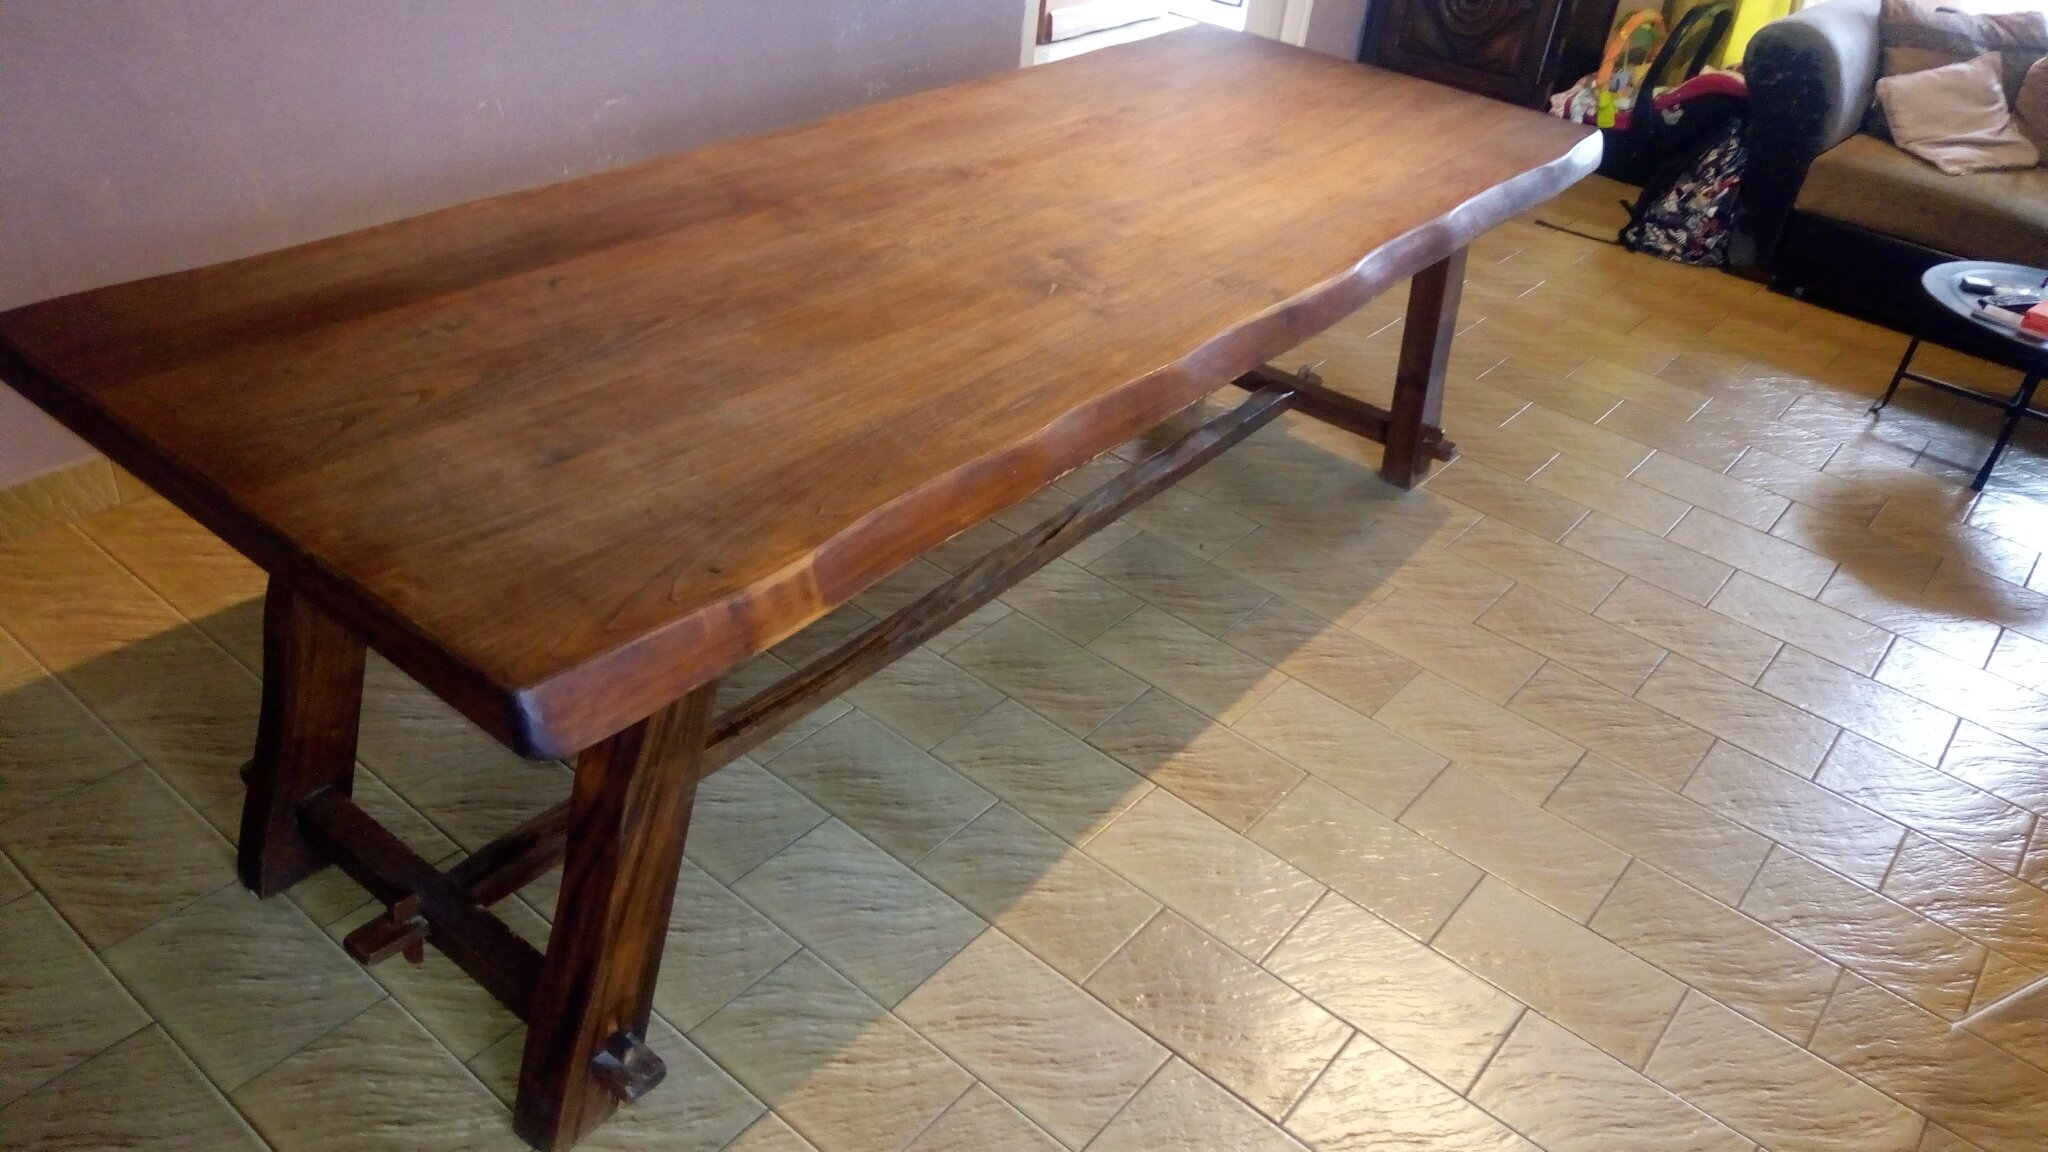 TABLE ORME VINTAGE OLAVI HANNINEN